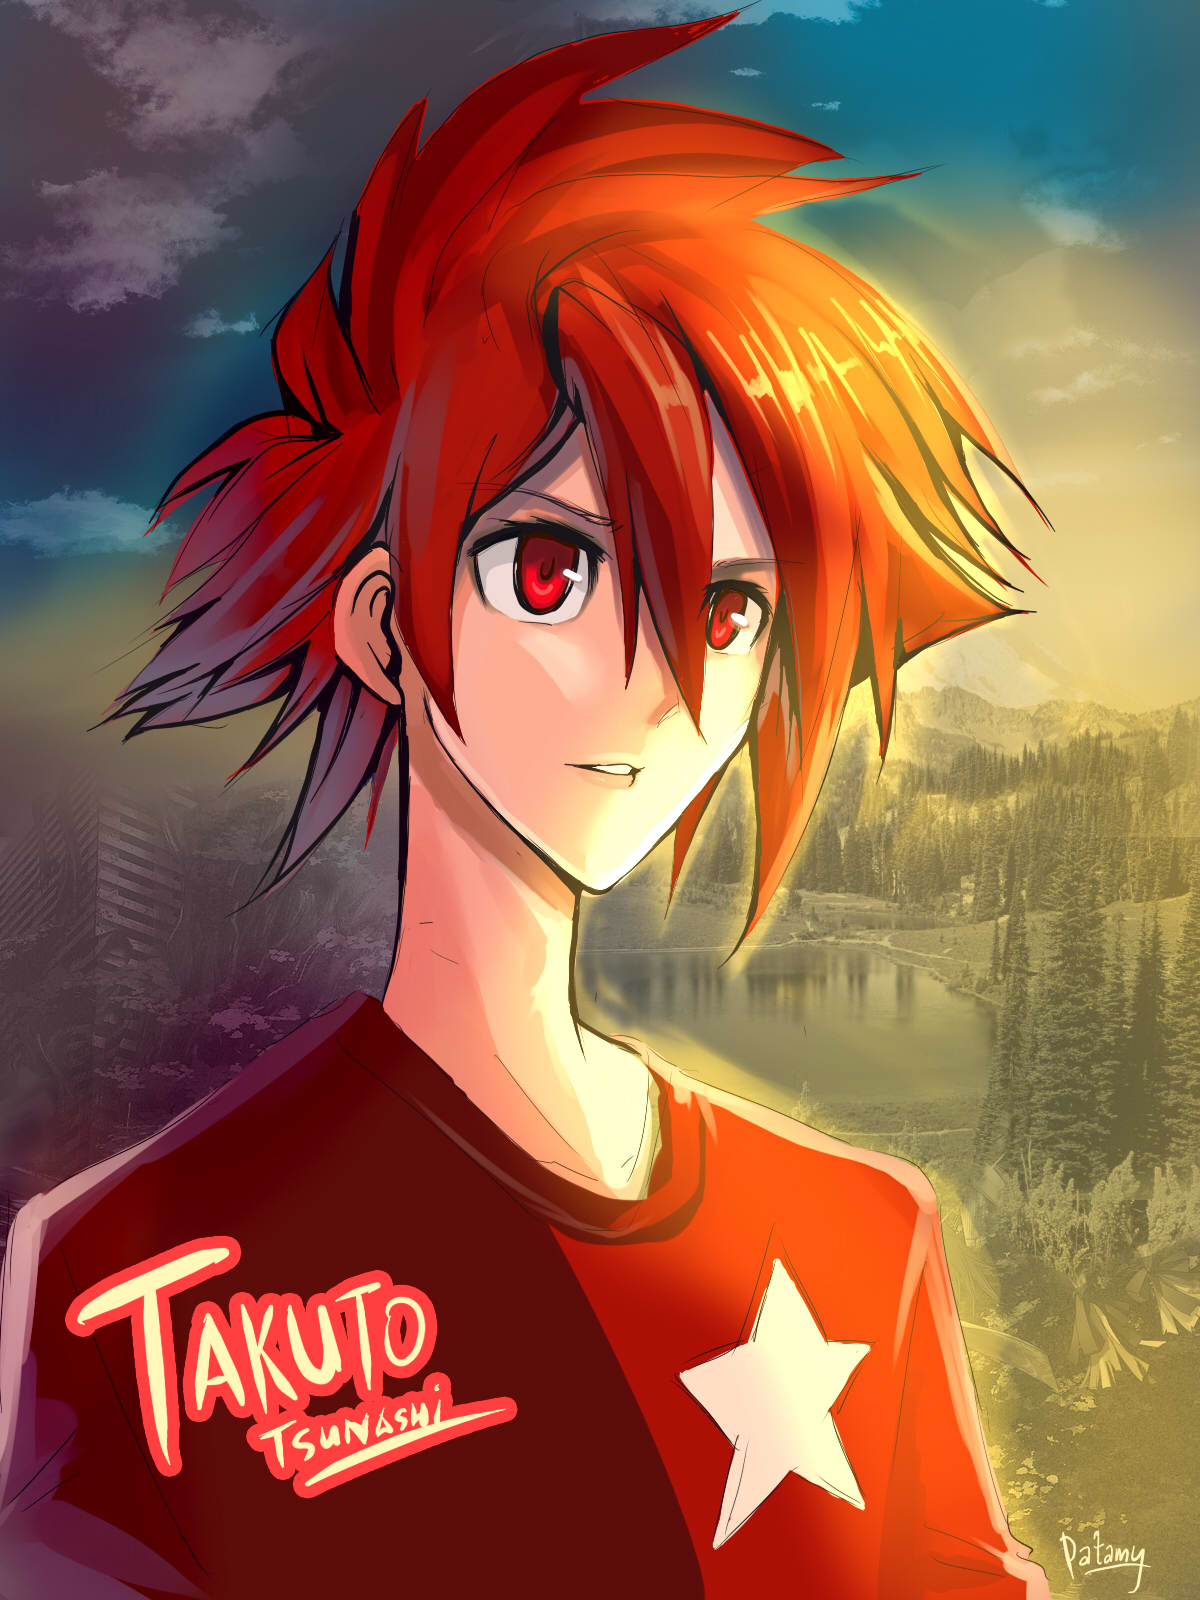 takuto_the_radiance_by_patamy-d3230i2.jpg